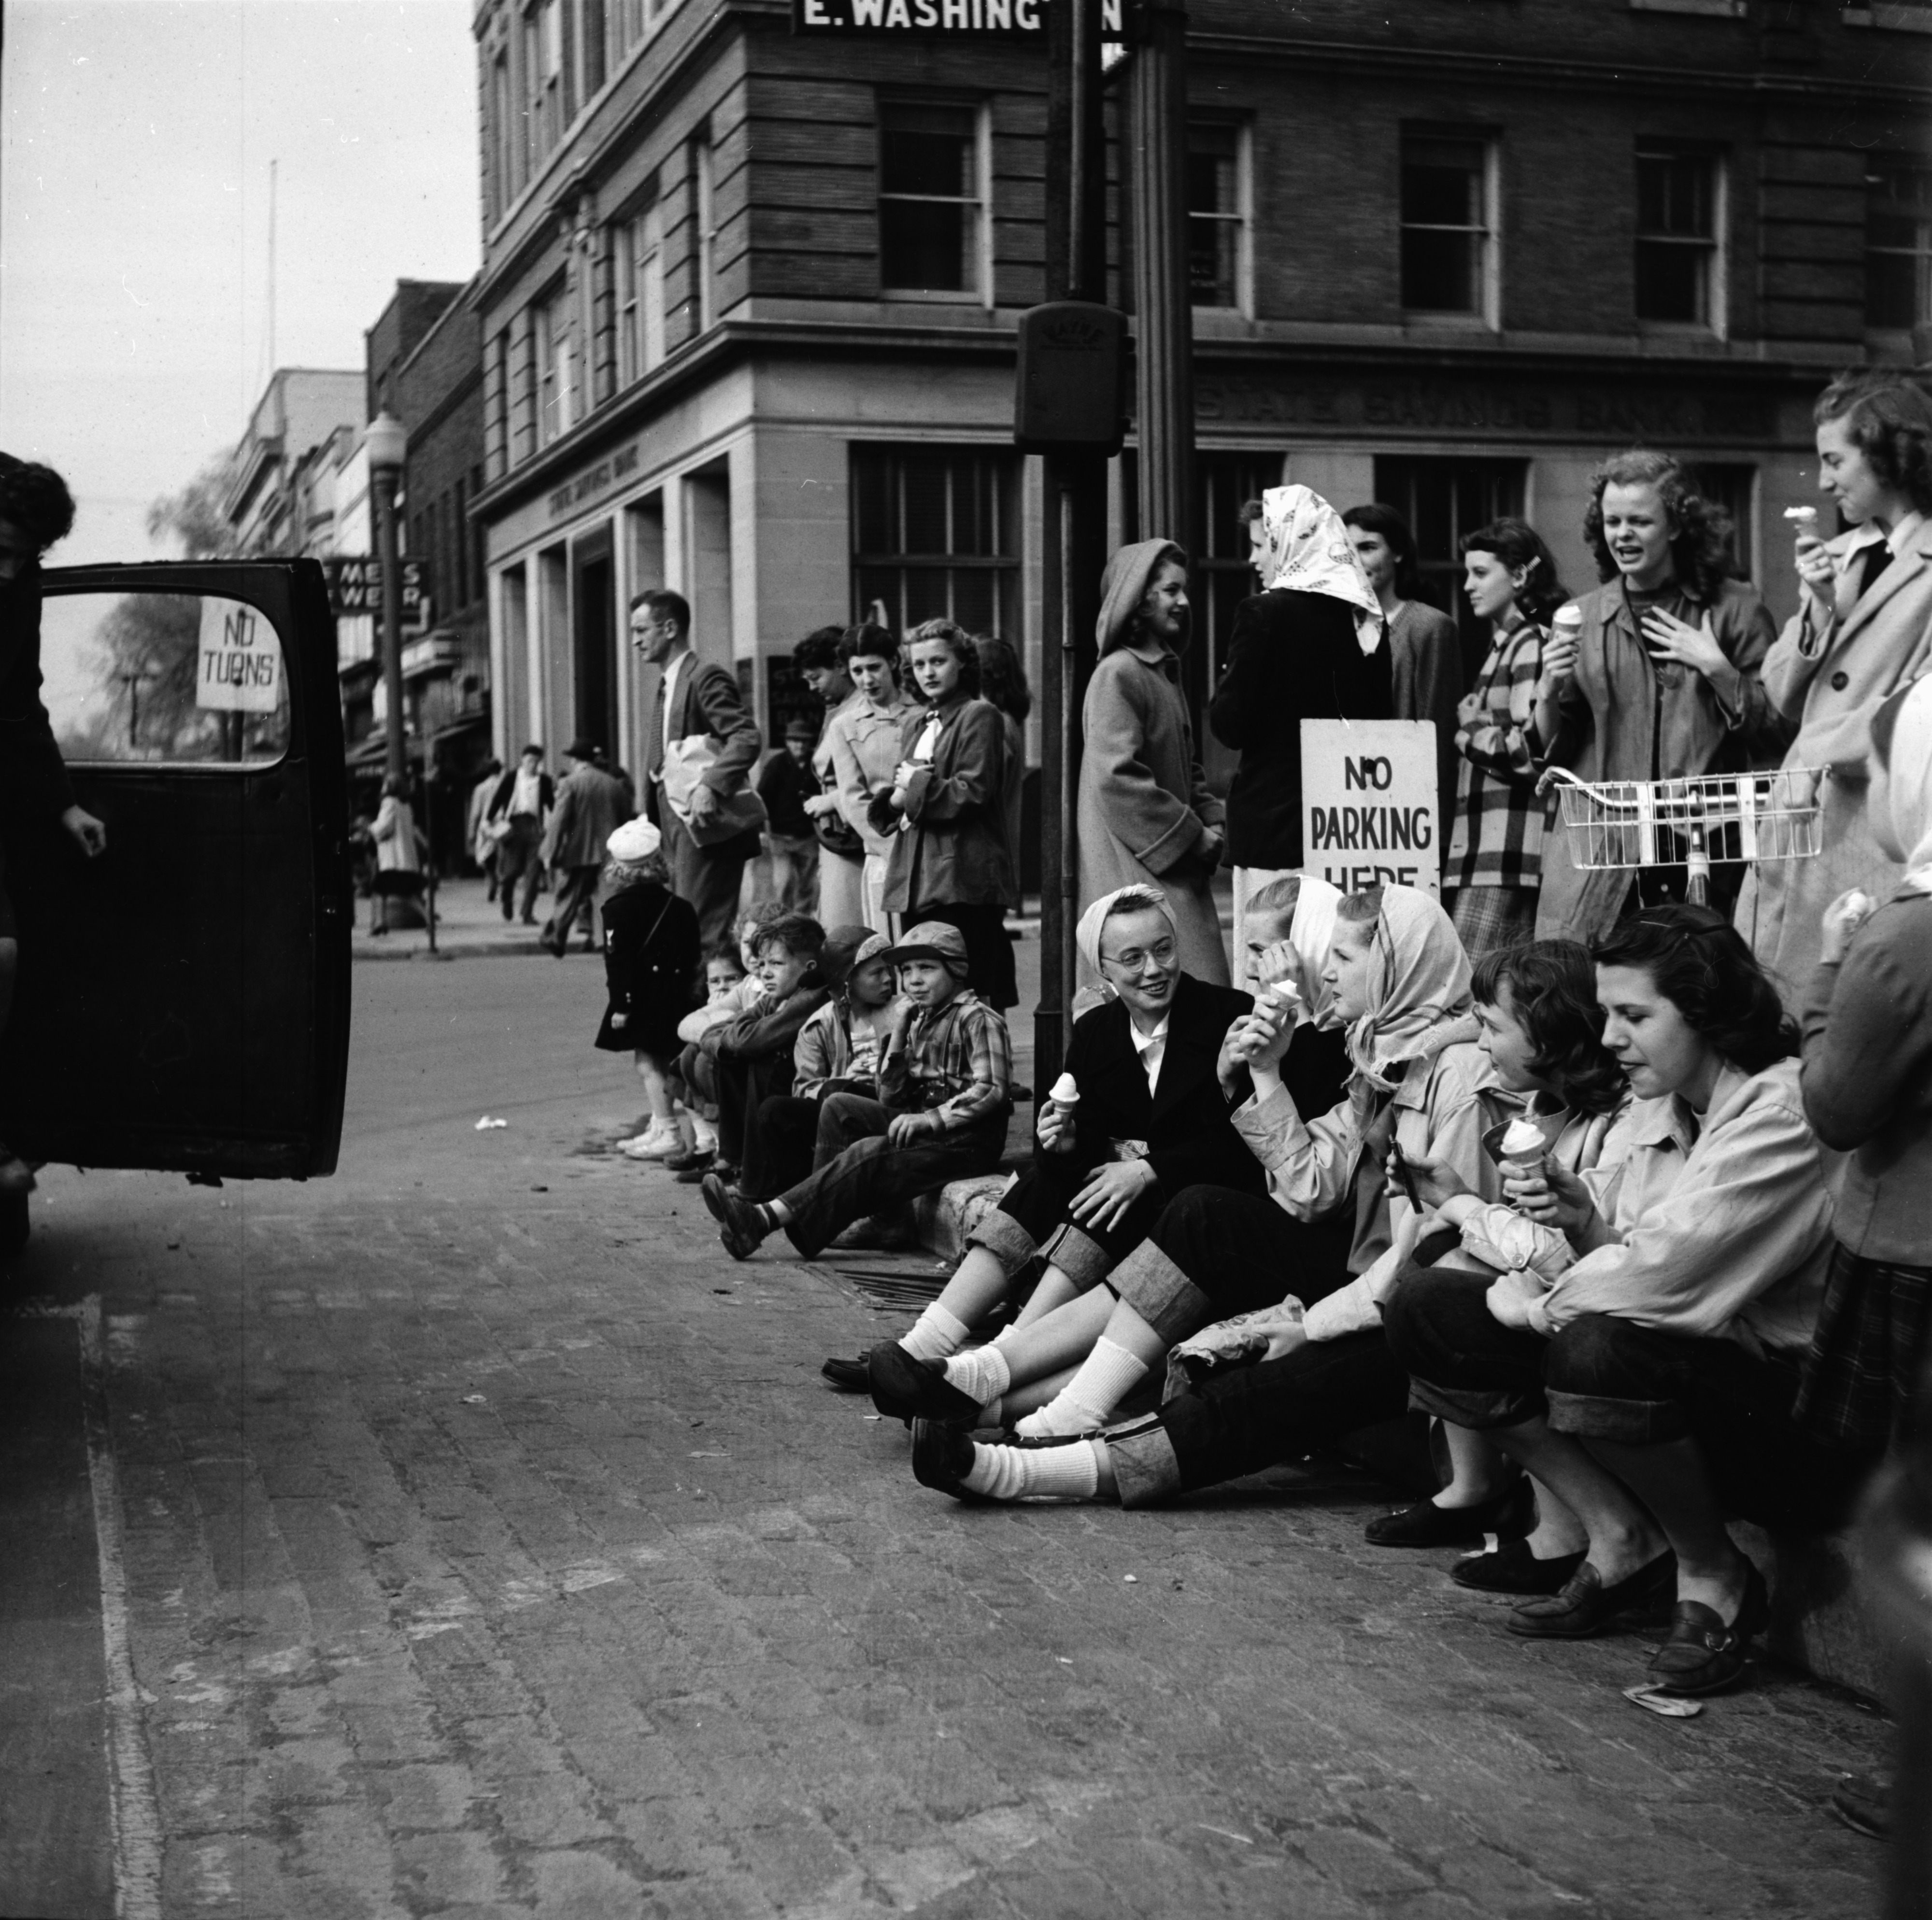 Eating Ice Cream and Watching the U-M Michigras Parade on the corner of Washington and Main Streets, April 1948 image